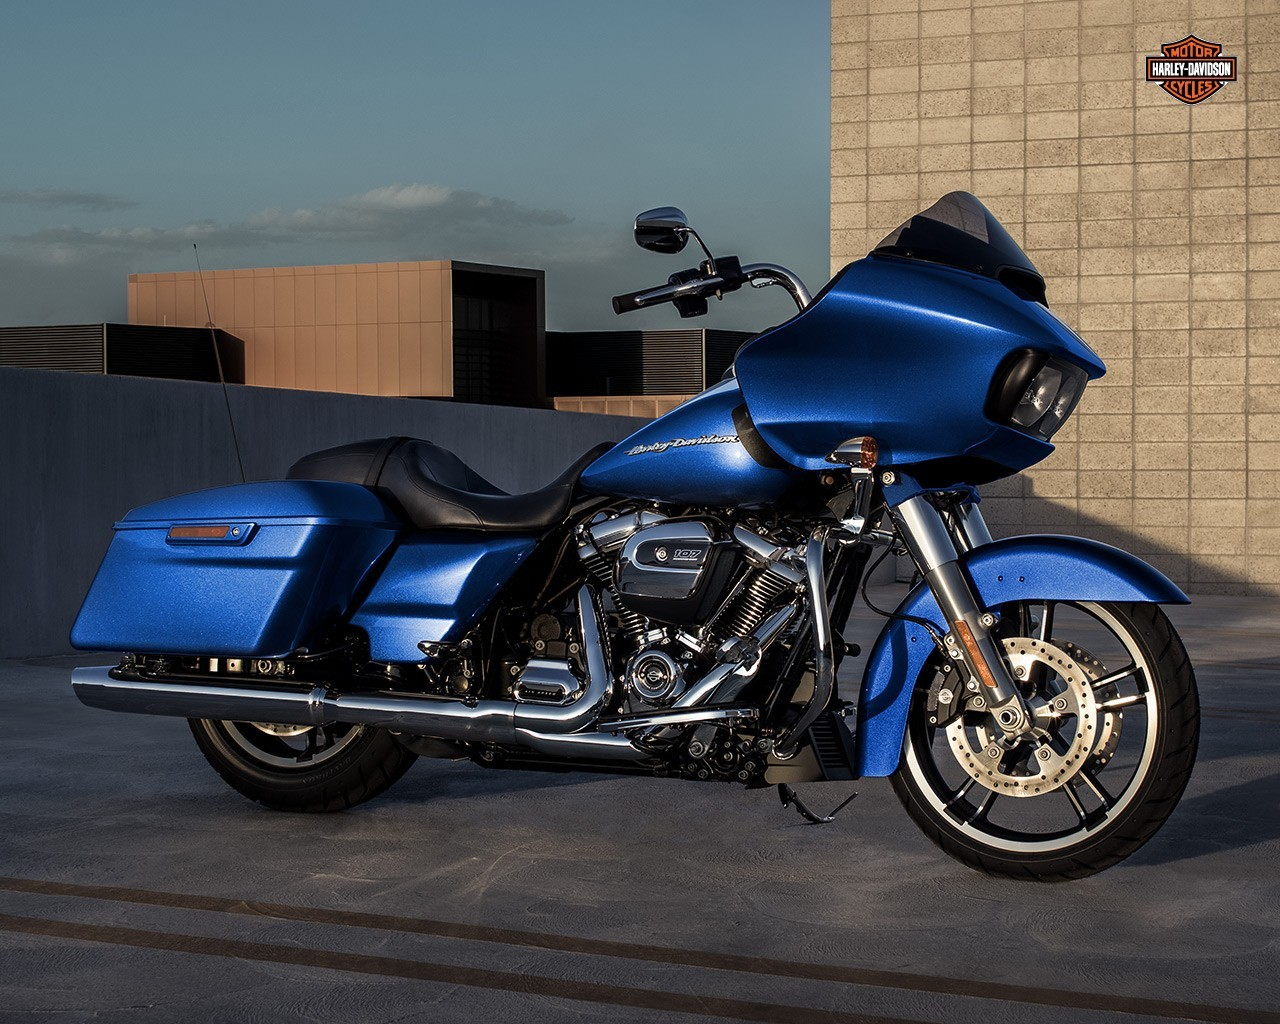 2017 Harley Davidson Touring Range Gets Updated